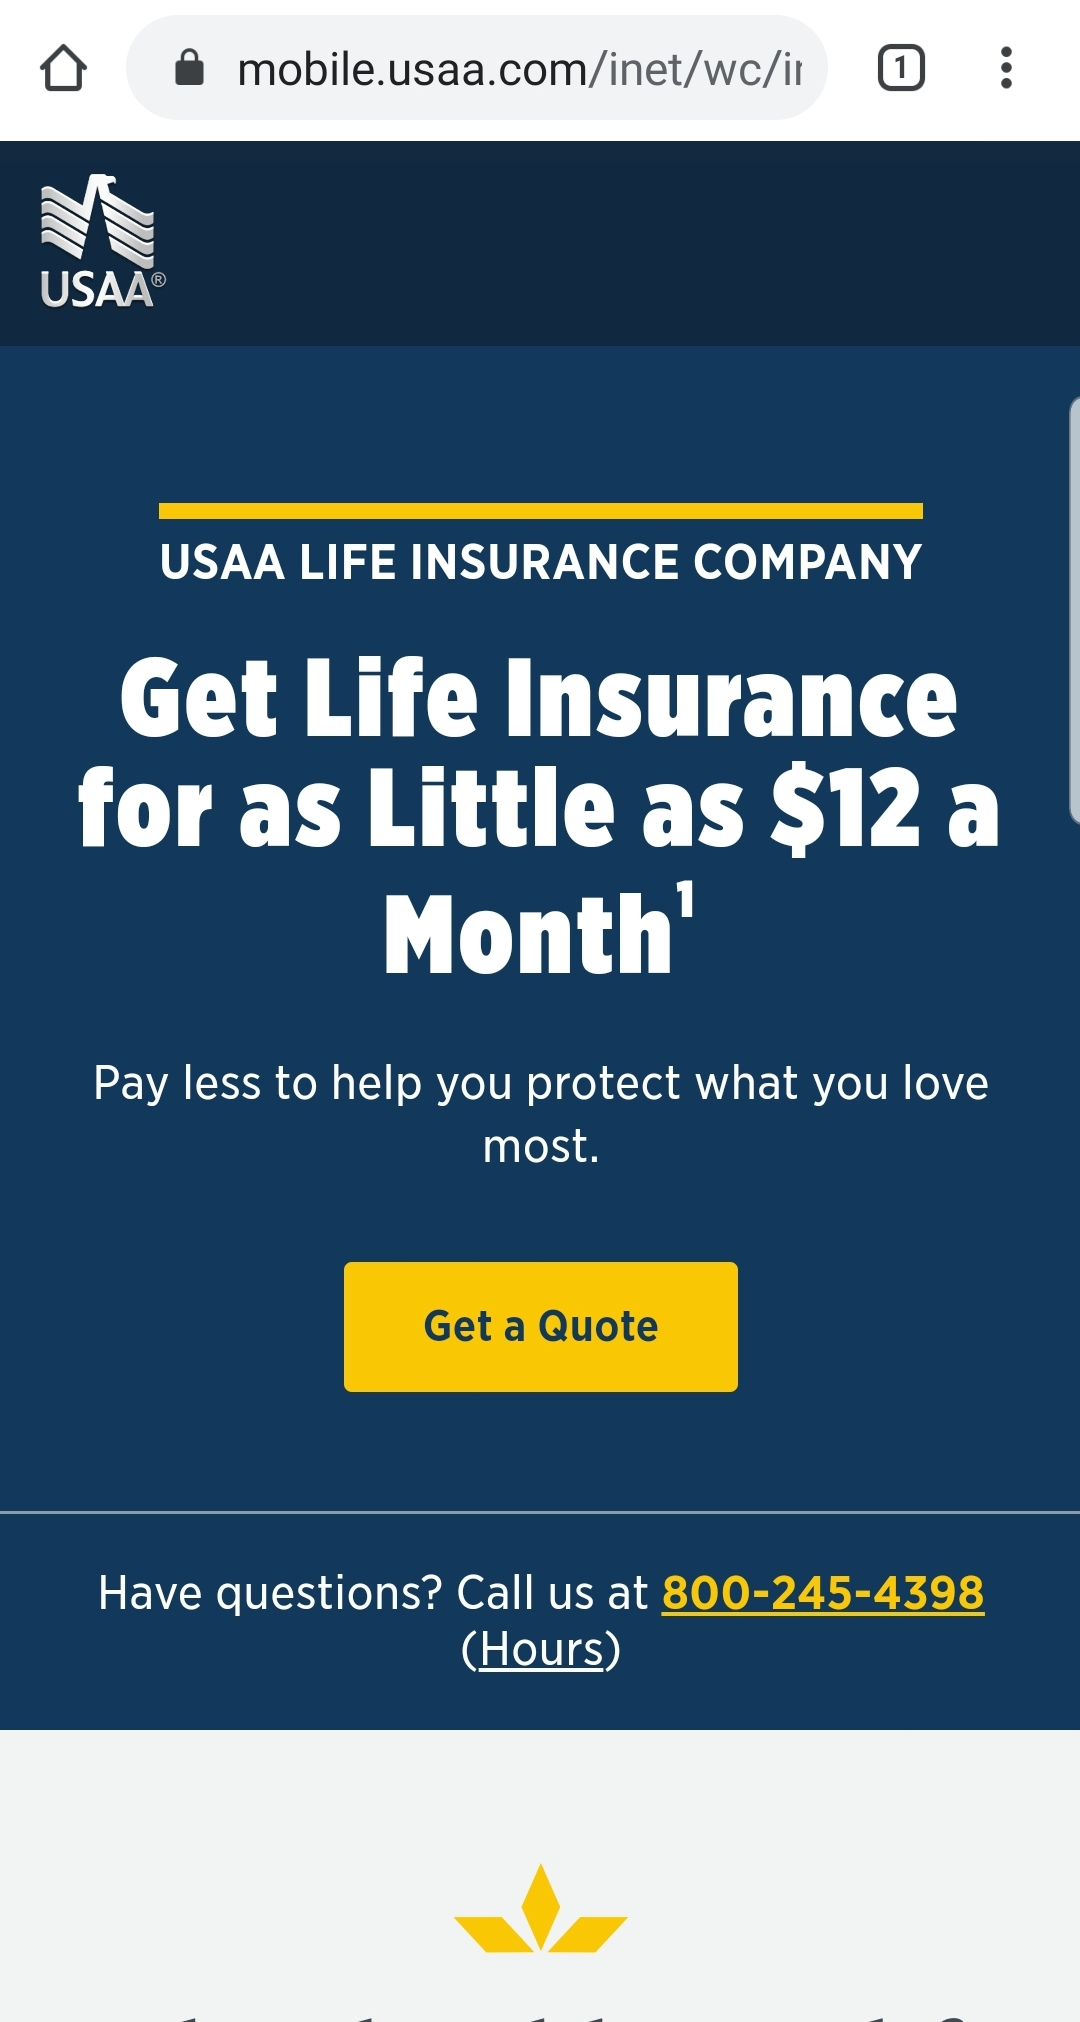 USAA mobile life insurance page.